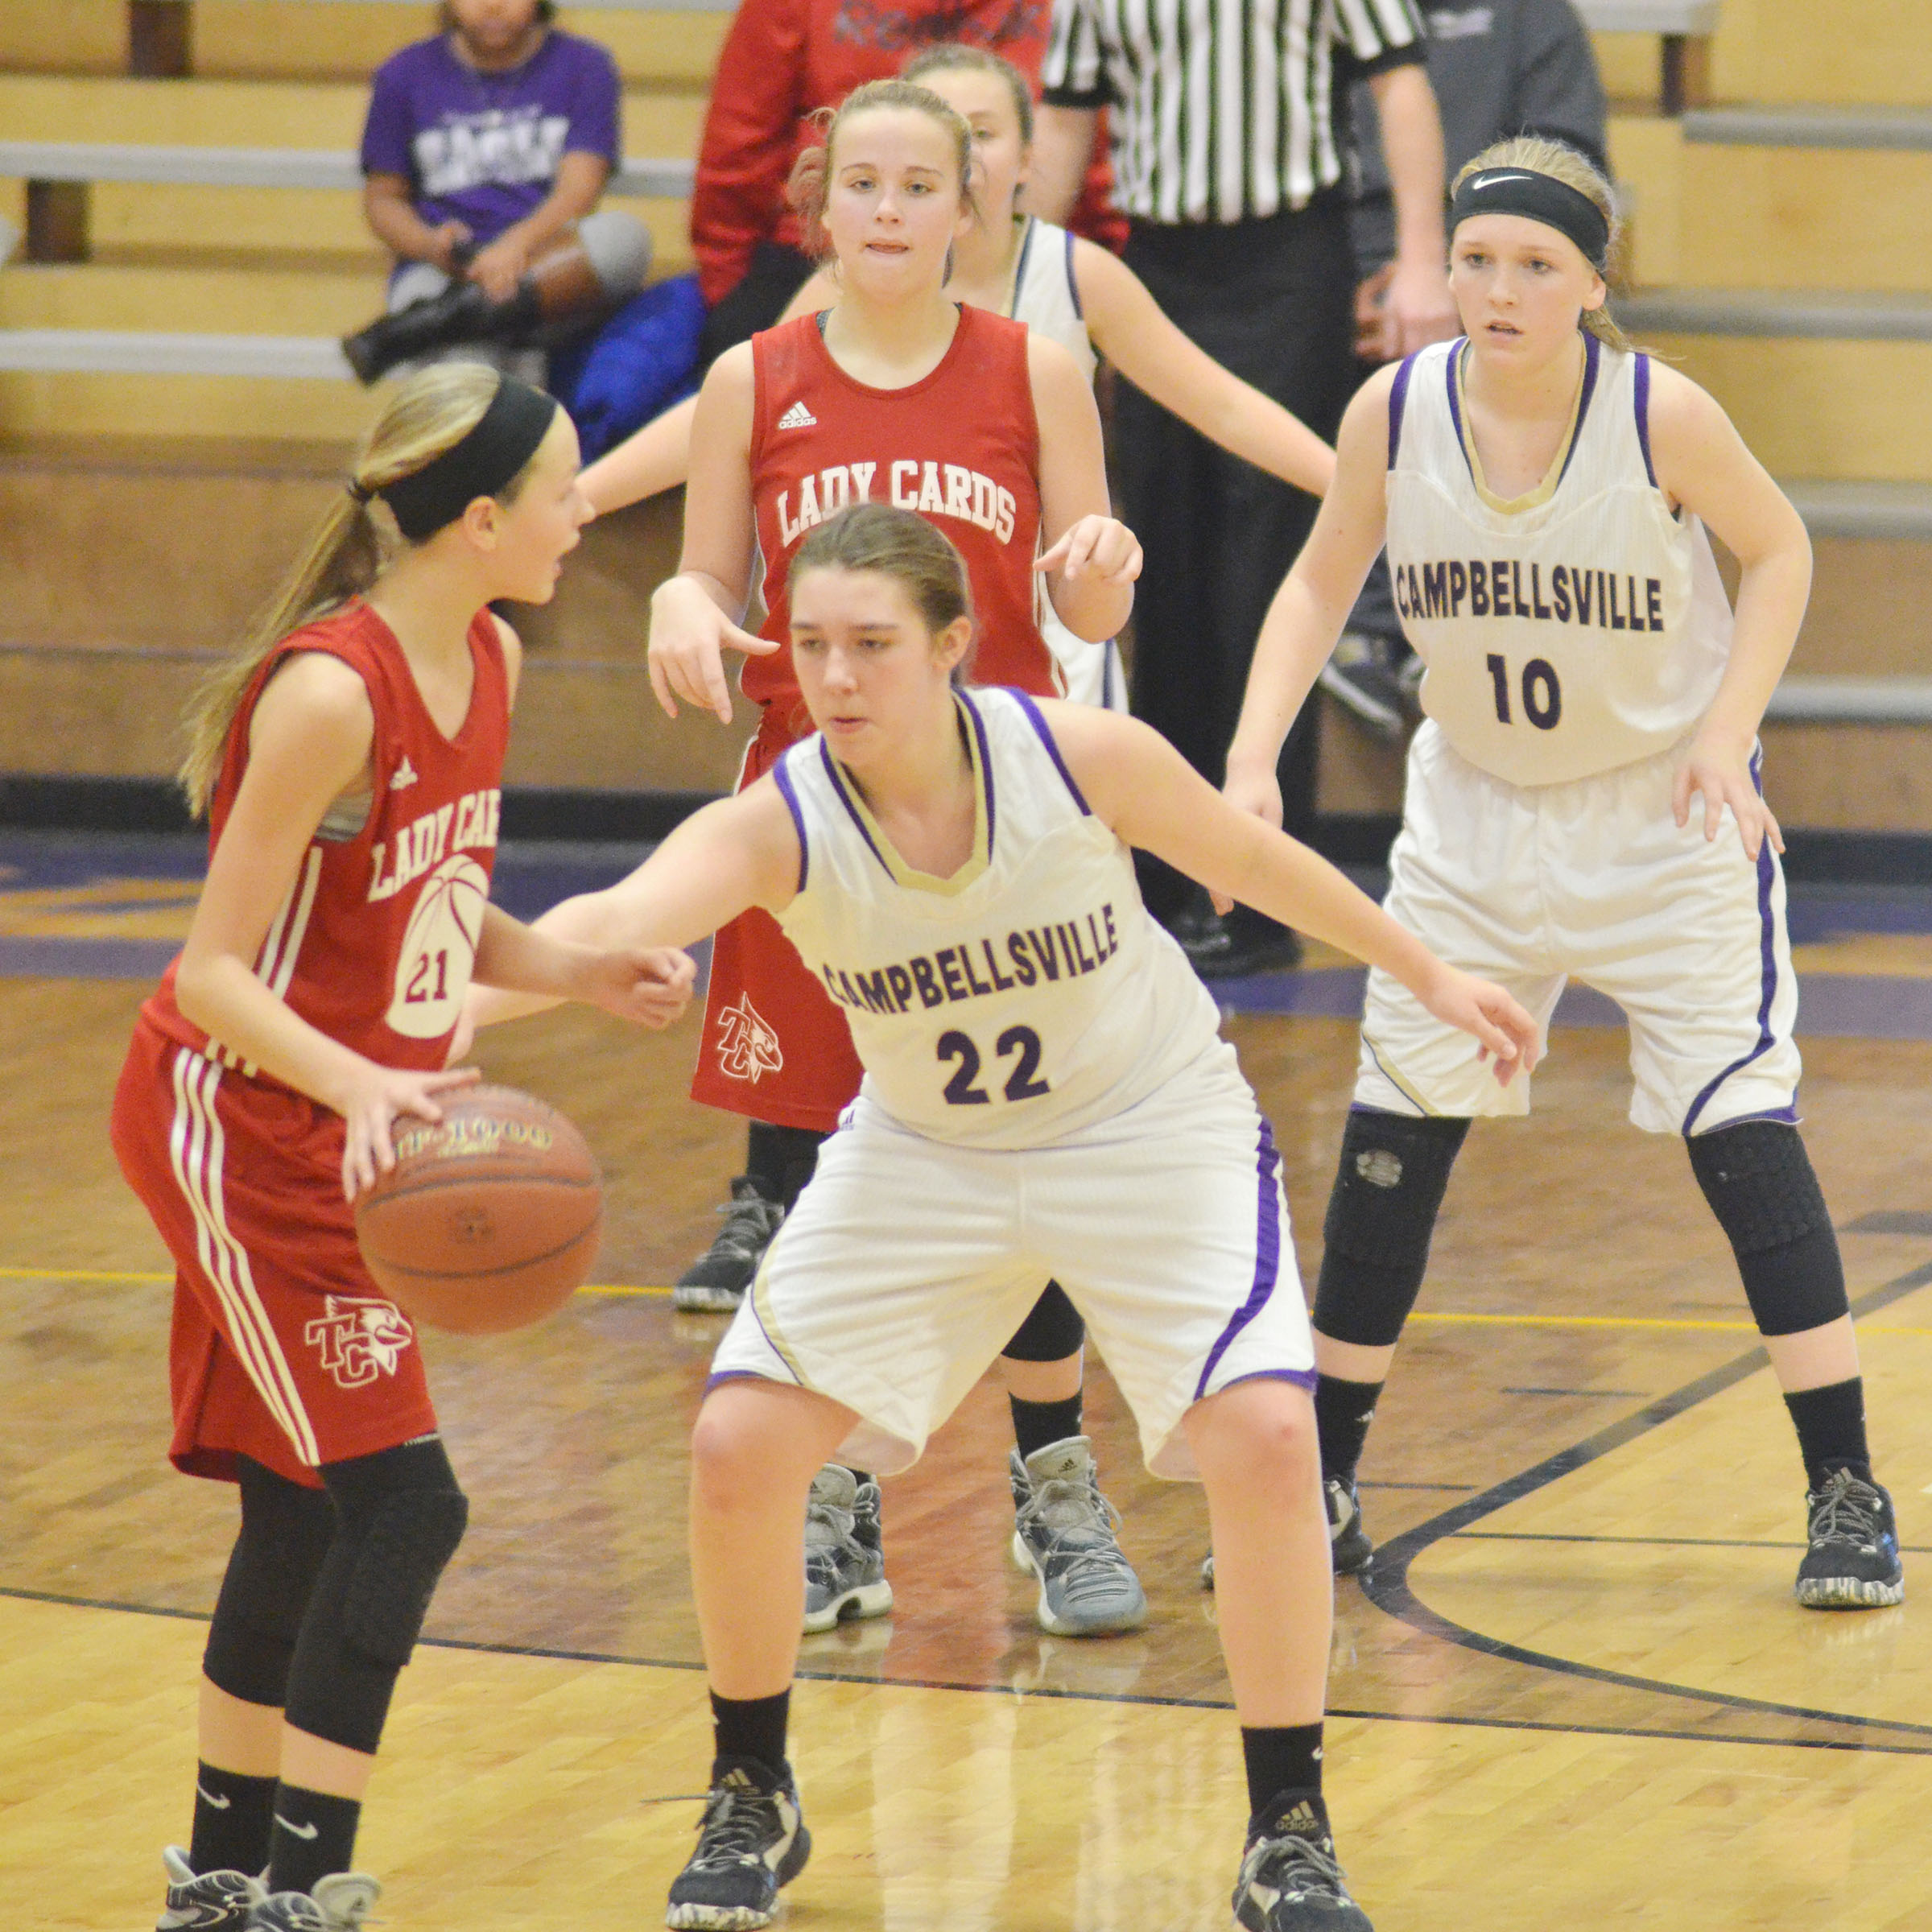 Campbellsville Middle School eighth-graders Abi Wiedewitsch, in front, and Catlyn Clausen play defense.